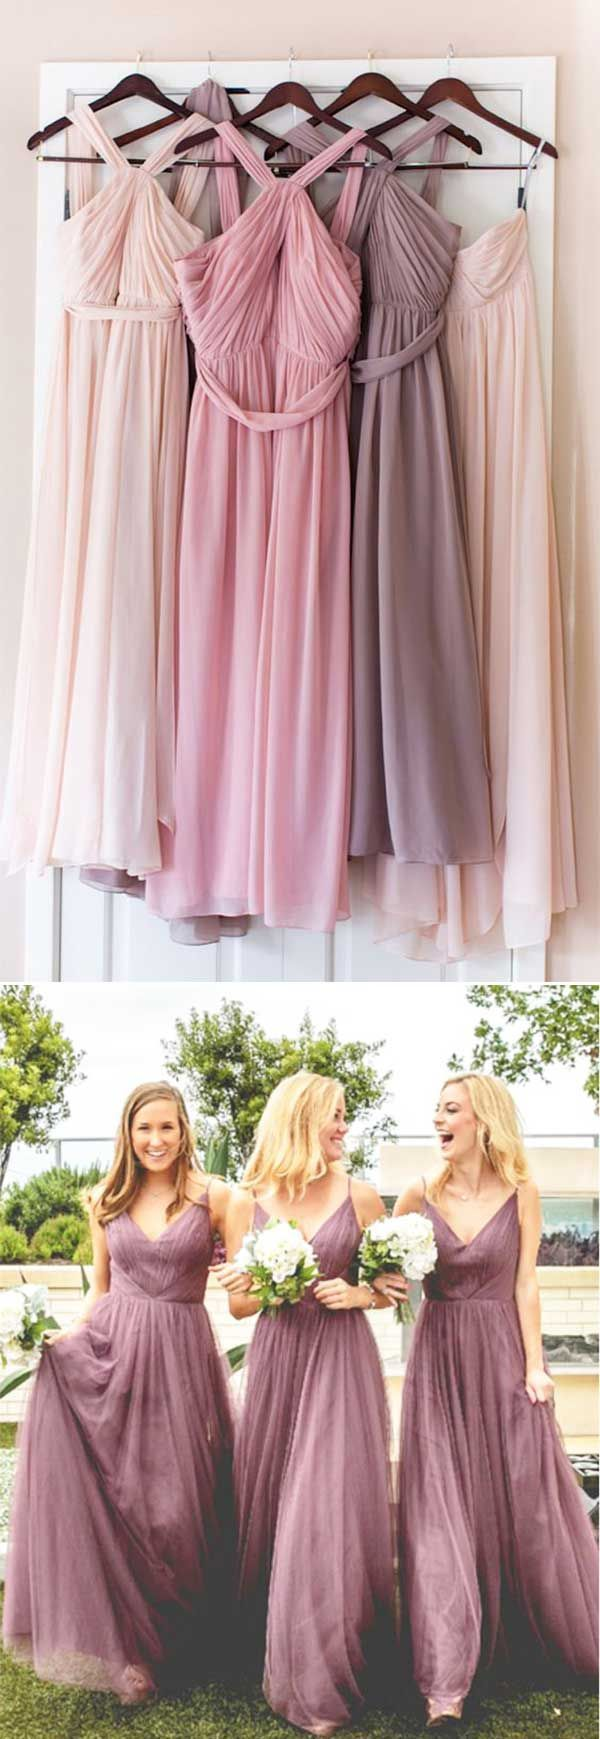 Best 25 prettiest wedding dress ideas on pinterest wedding 2018 stylish prettiest wedding color trend shade of mauve wedding invites paper dusty ombrellifo Image collections